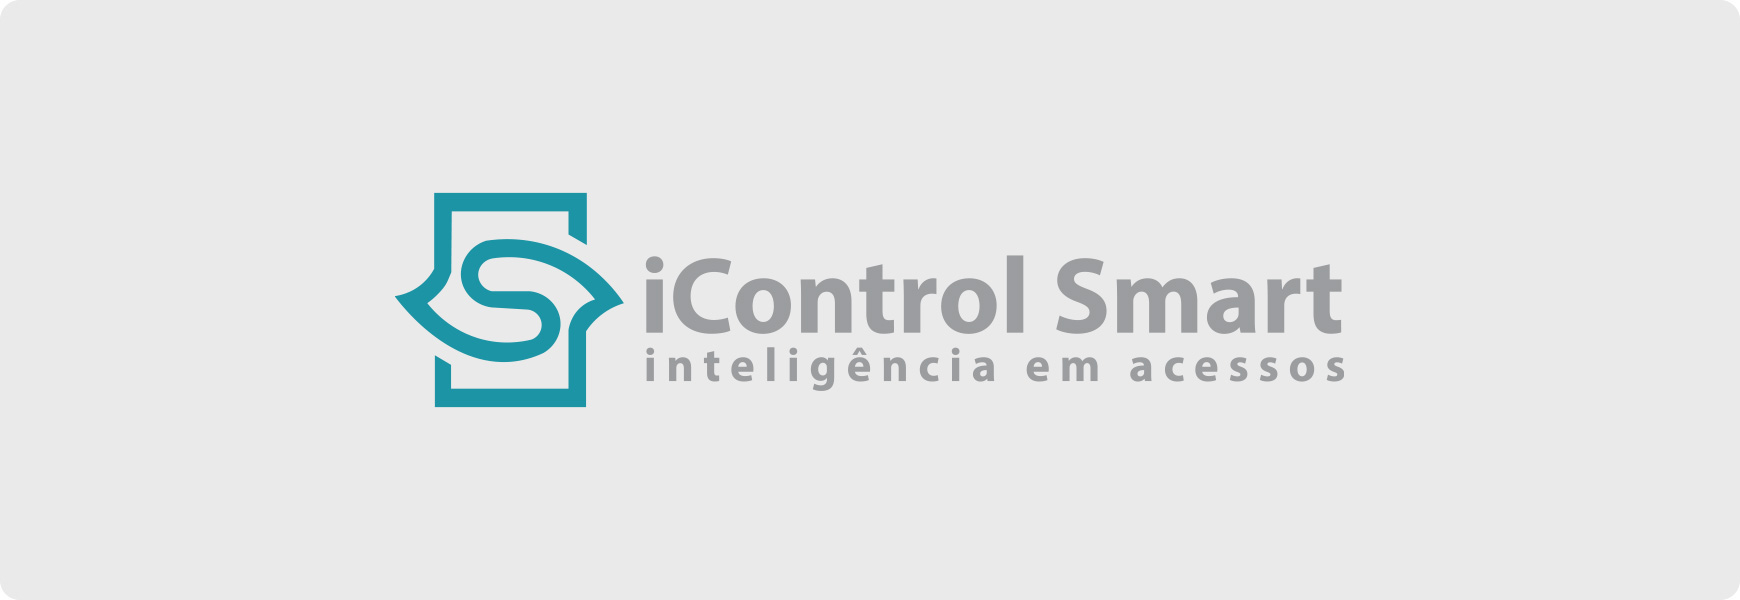 Alca Distribuidora - iControl Smart